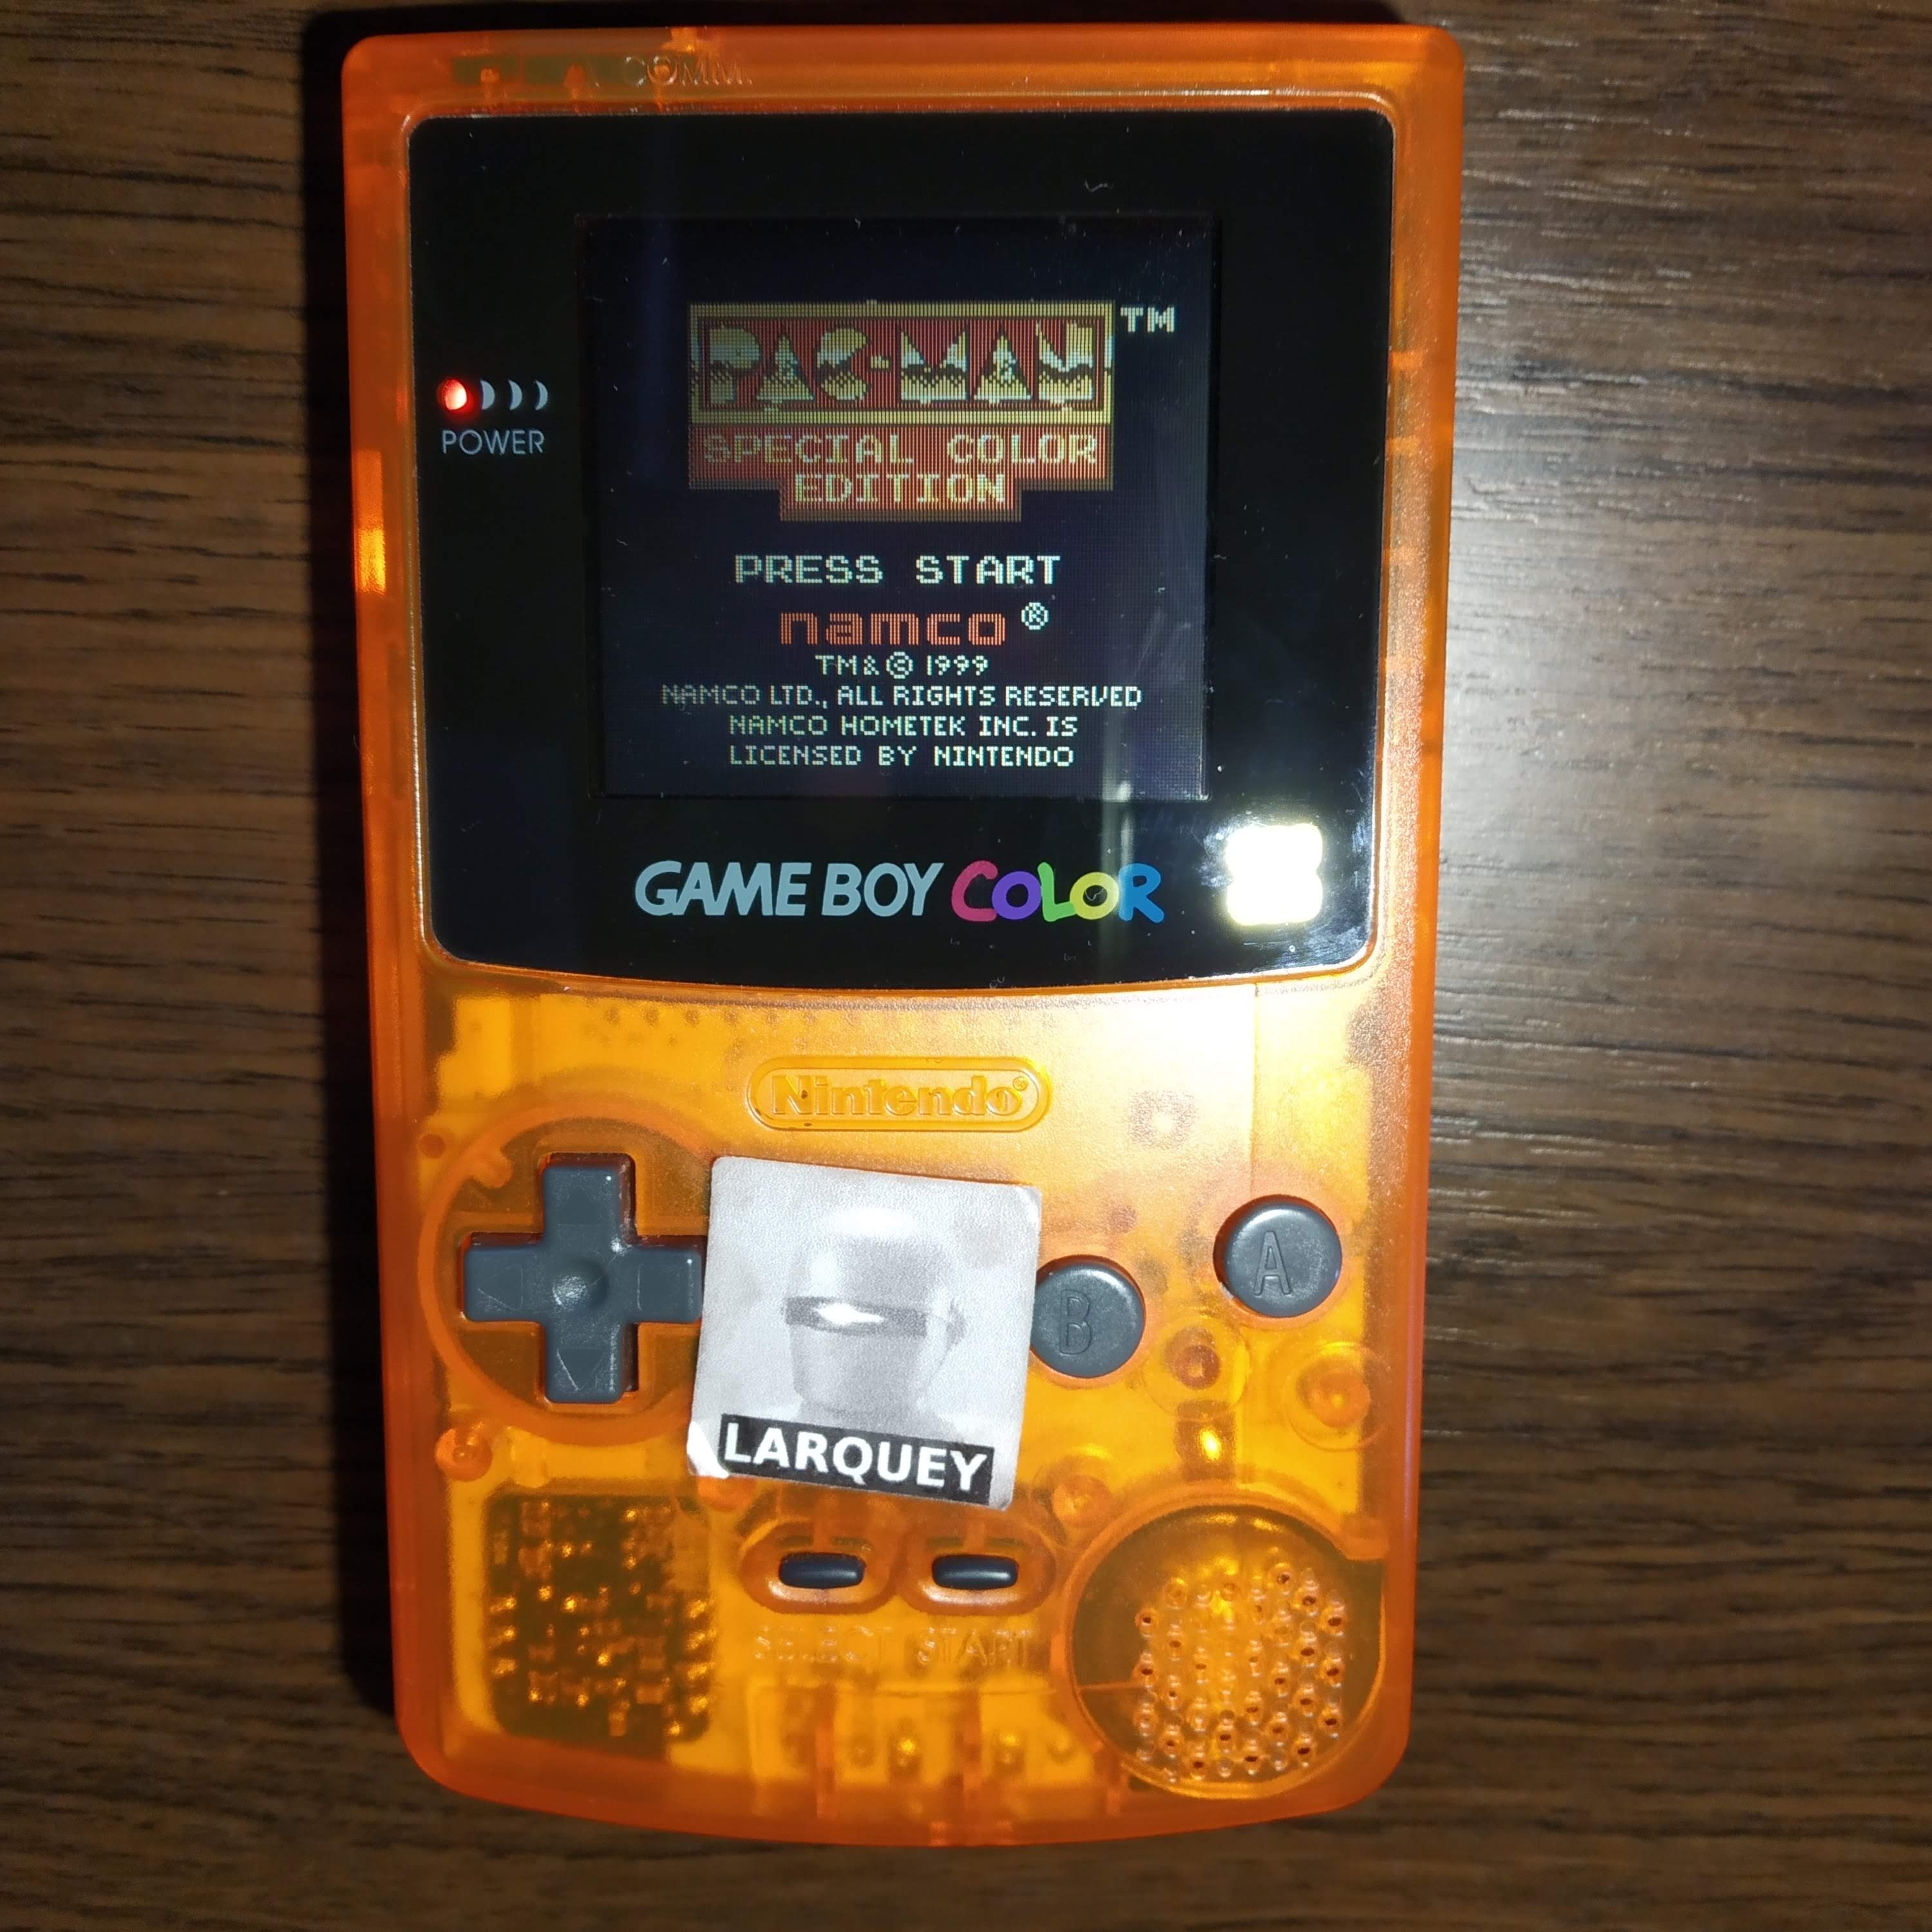 Larquey: Pac-Man: Special Color Edition (Game Boy Color) 30,590 points on 2020-07-23 10:54:08